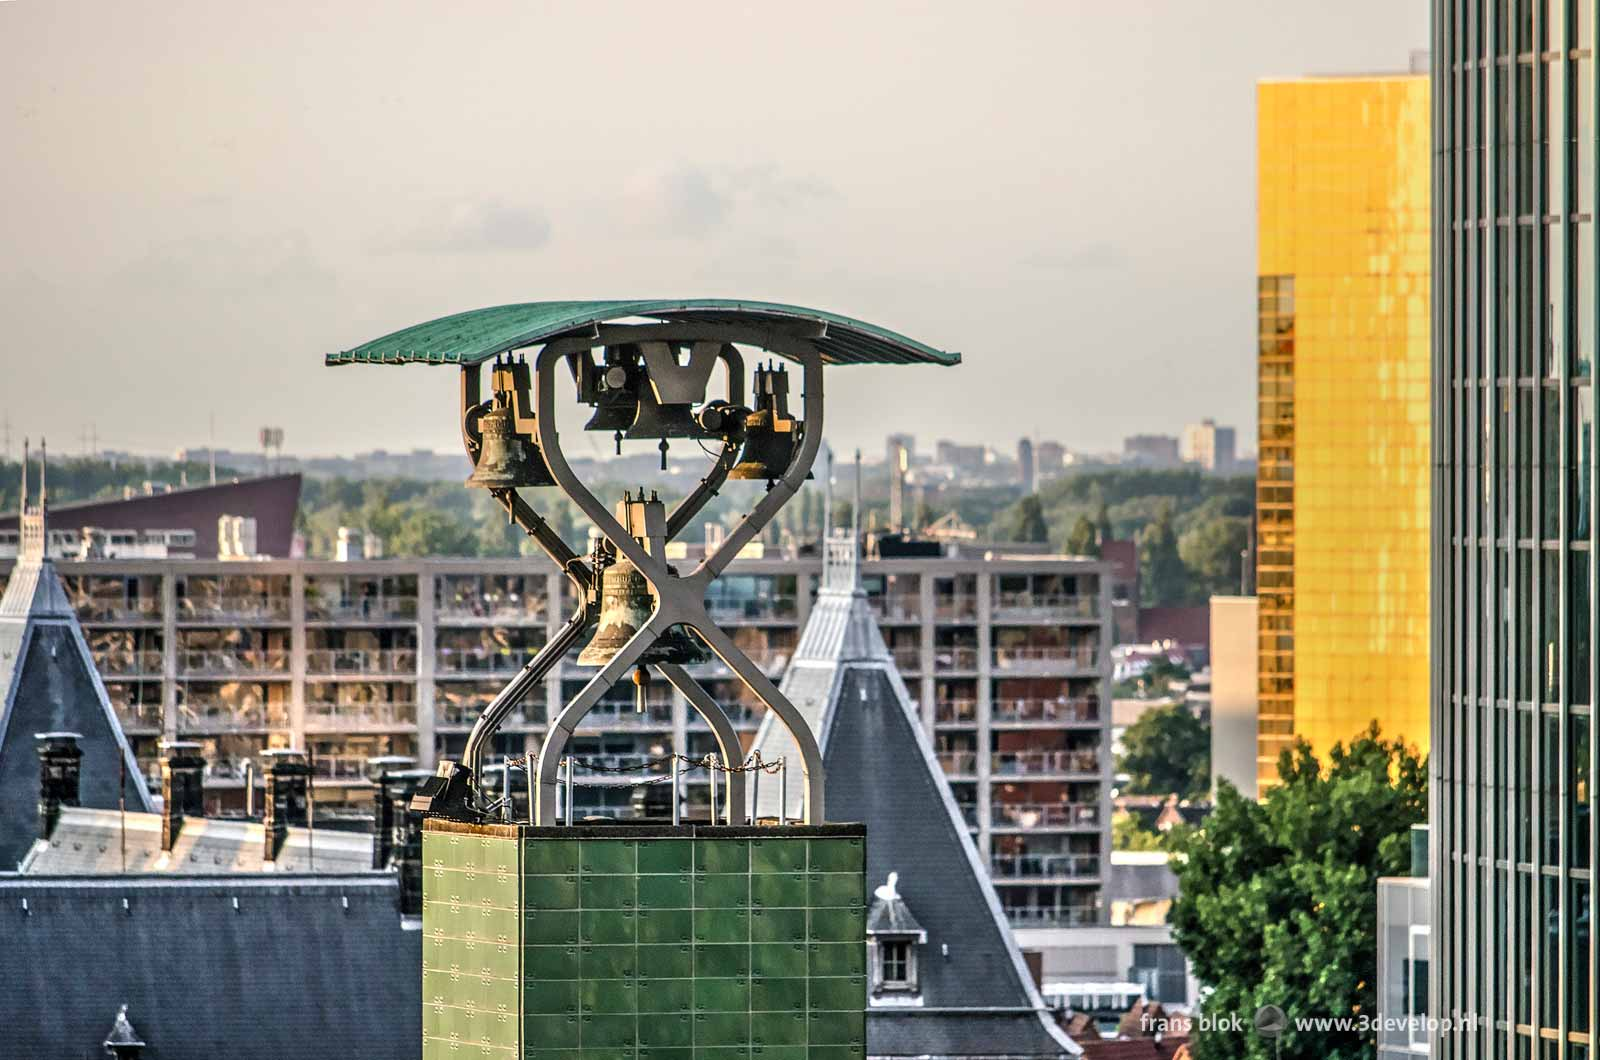 Close-up of the bells in the clock tower of Beurs WTC in Rotterdam